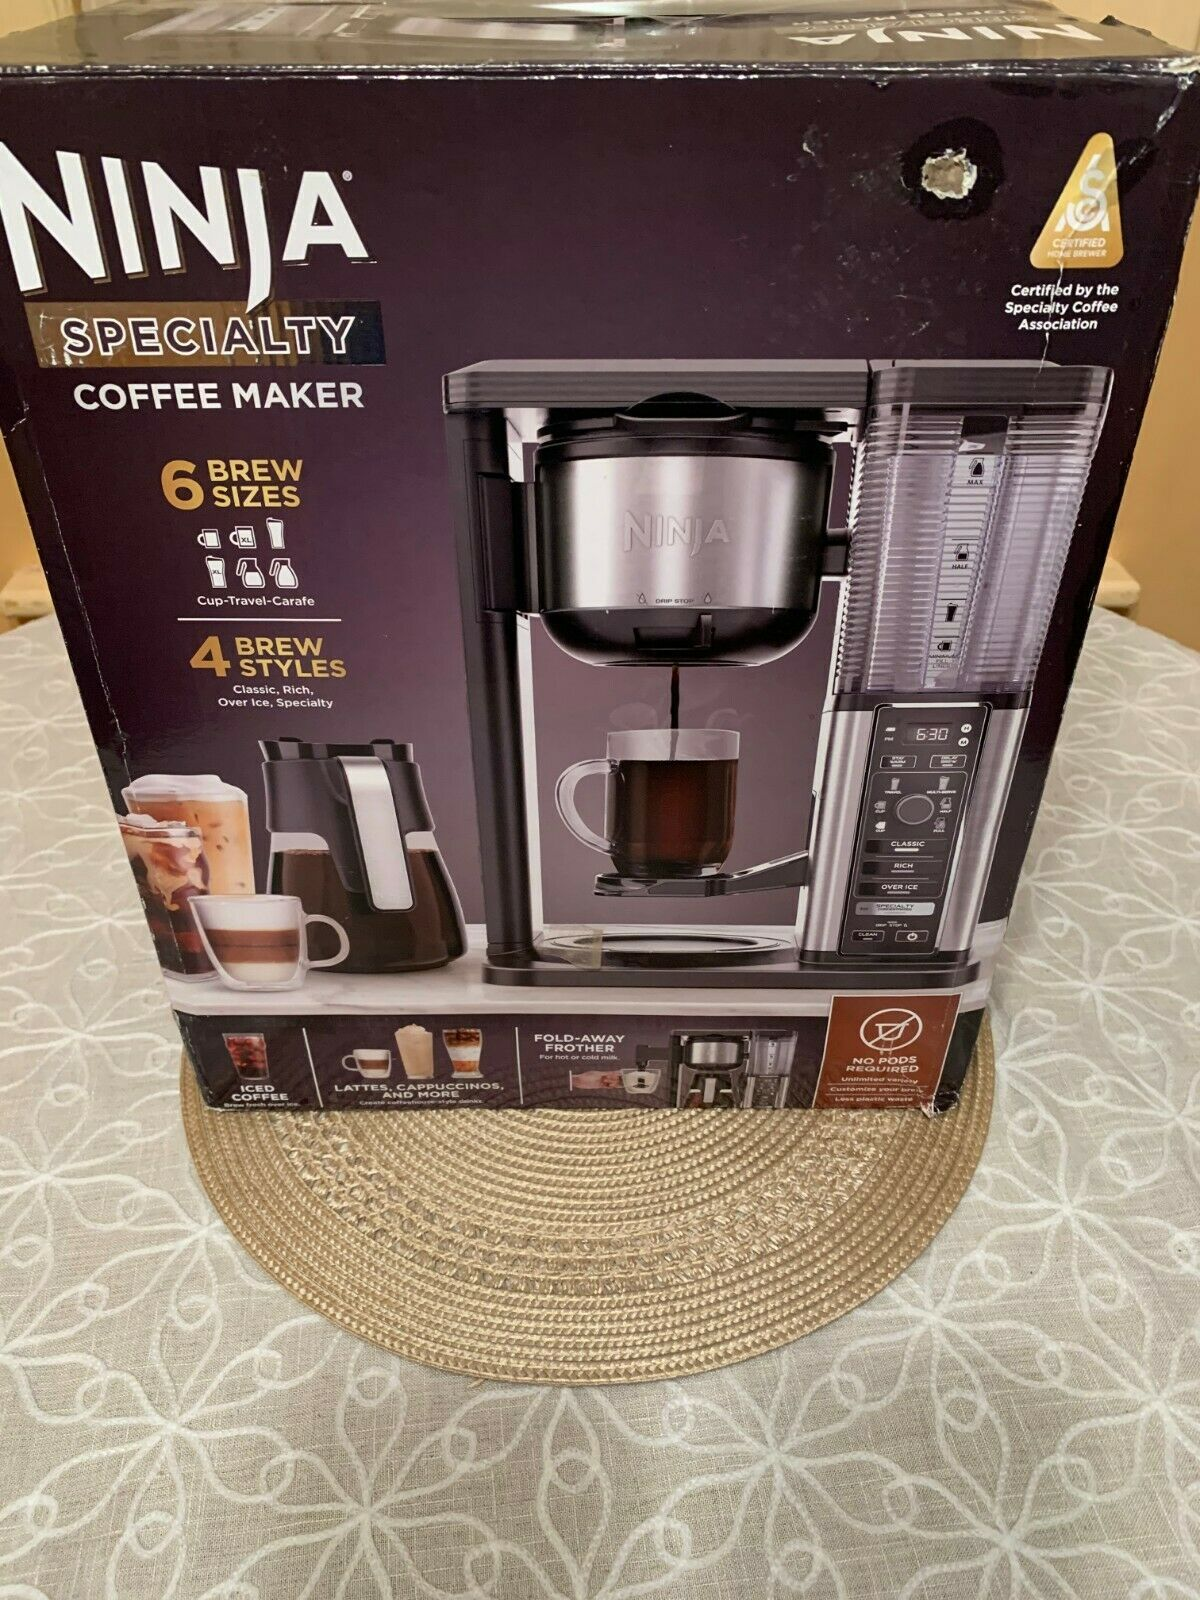 Ninja CM401 Specialty FoldAway Frother Coffee Maker